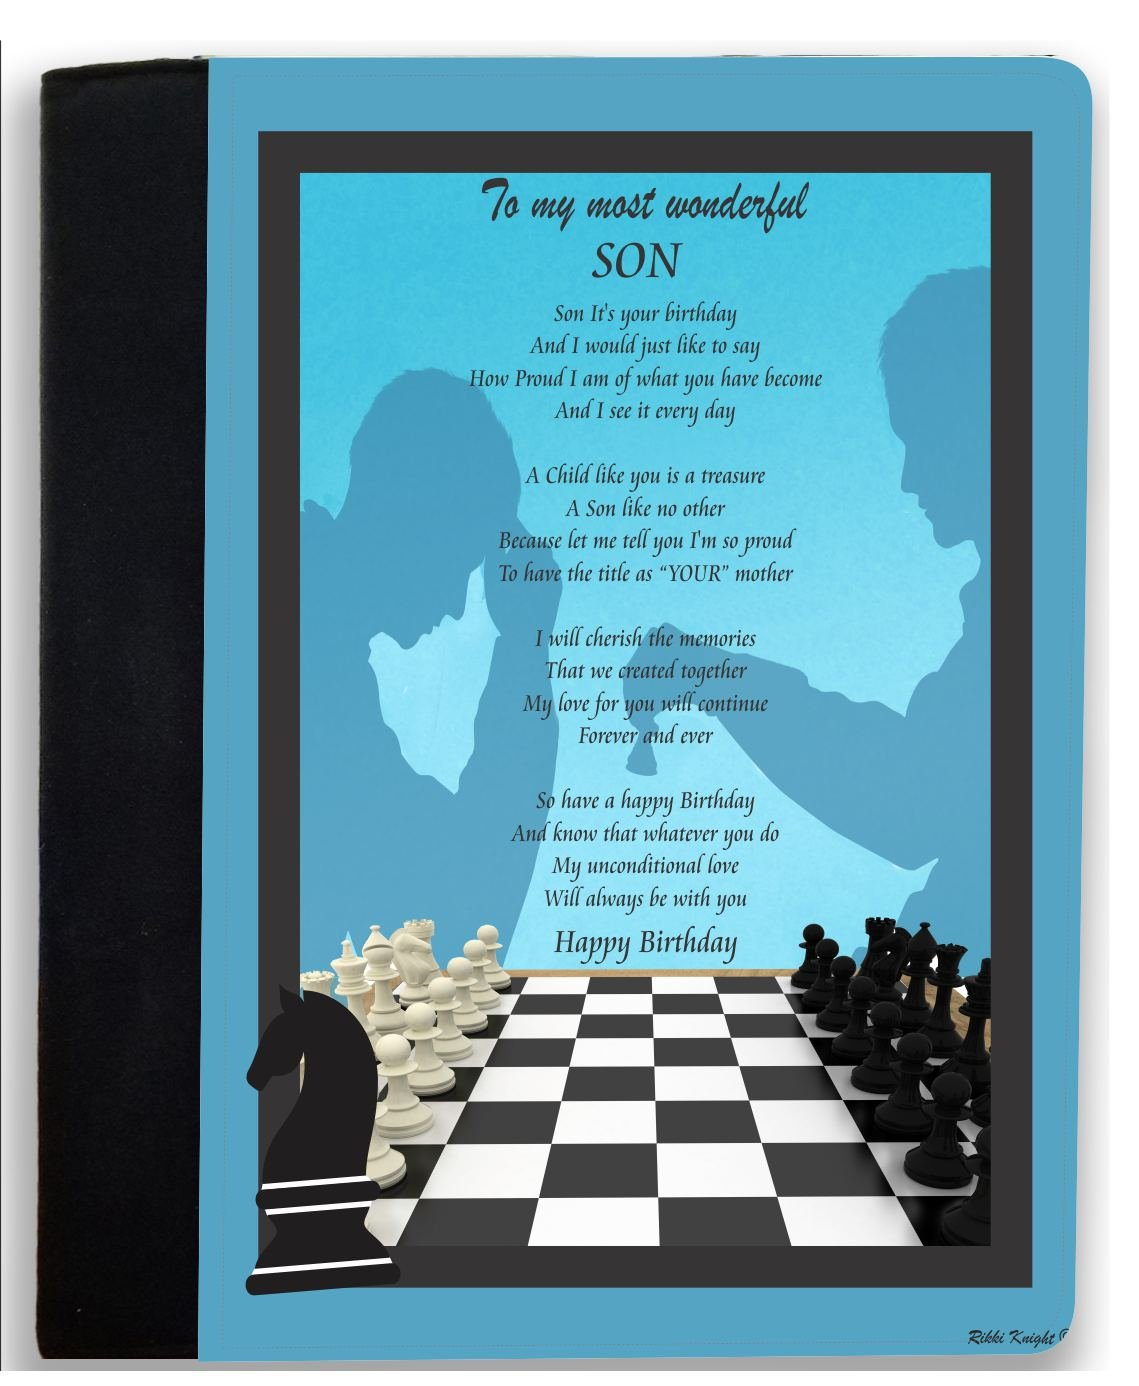 Rikki Knight Birthday Blessings to My Son (from Mom) Chess Gameboard Silhouette Blue Design Poem Notebook Portfolio Faux Suede (Notebook Included)